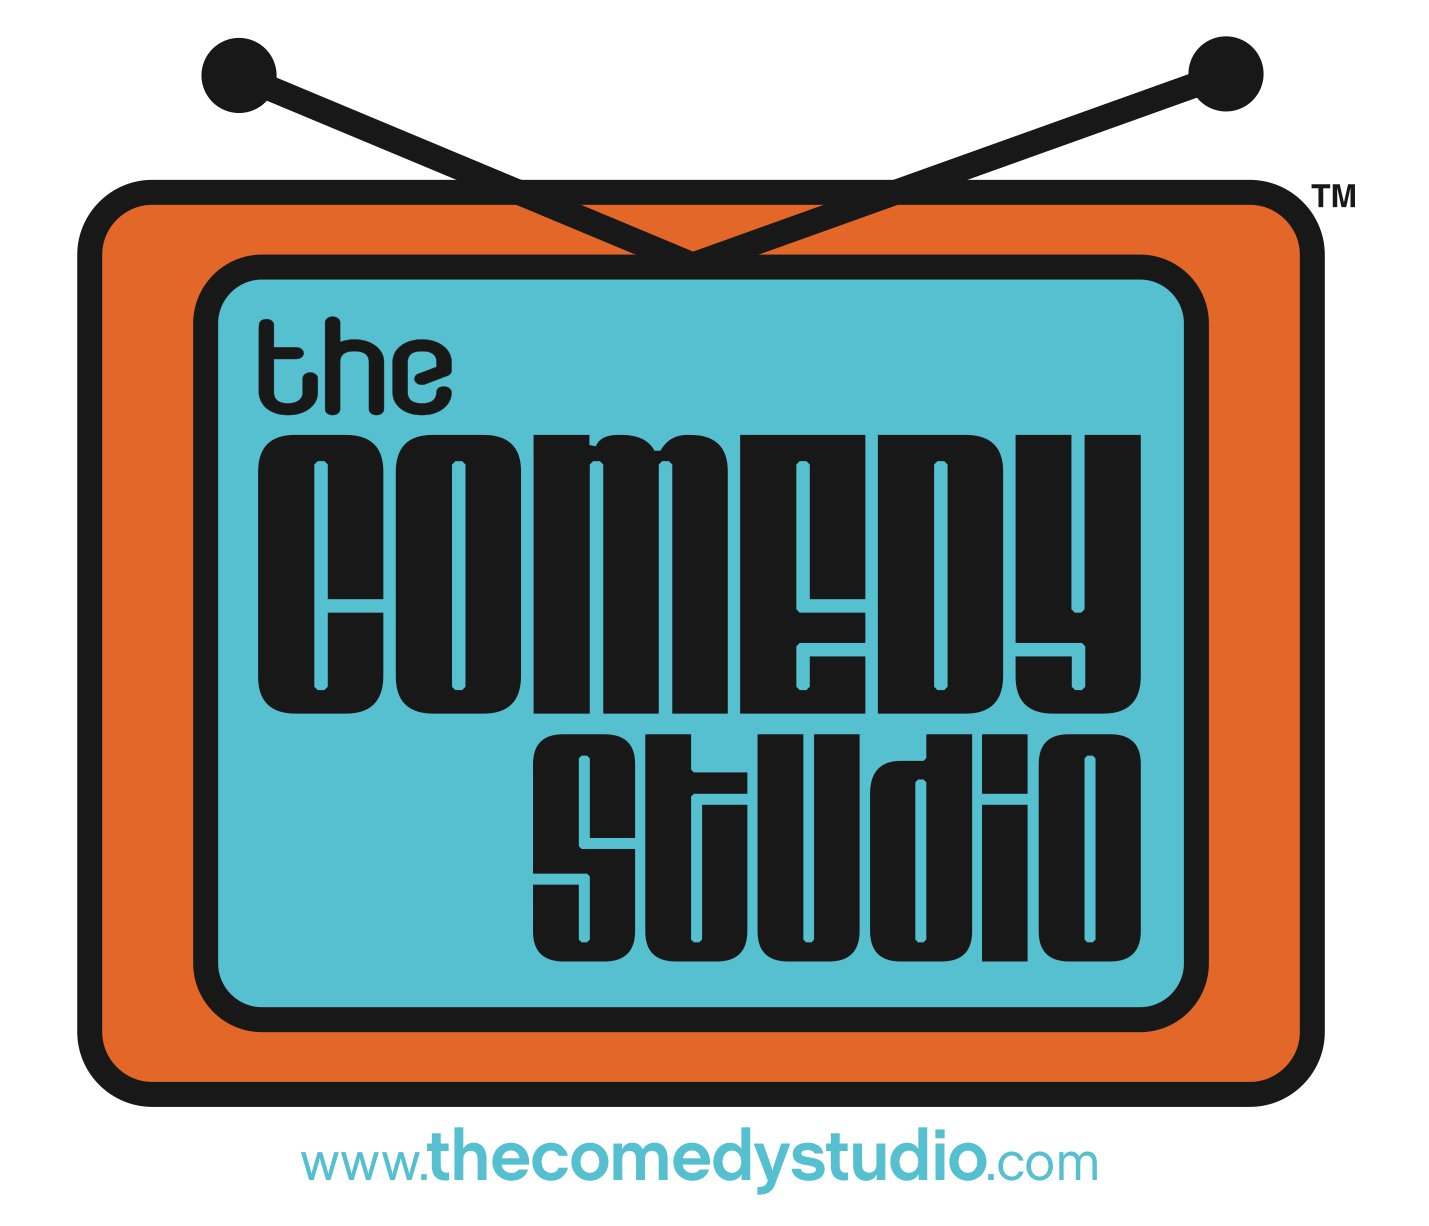 Comedy Studio Logo